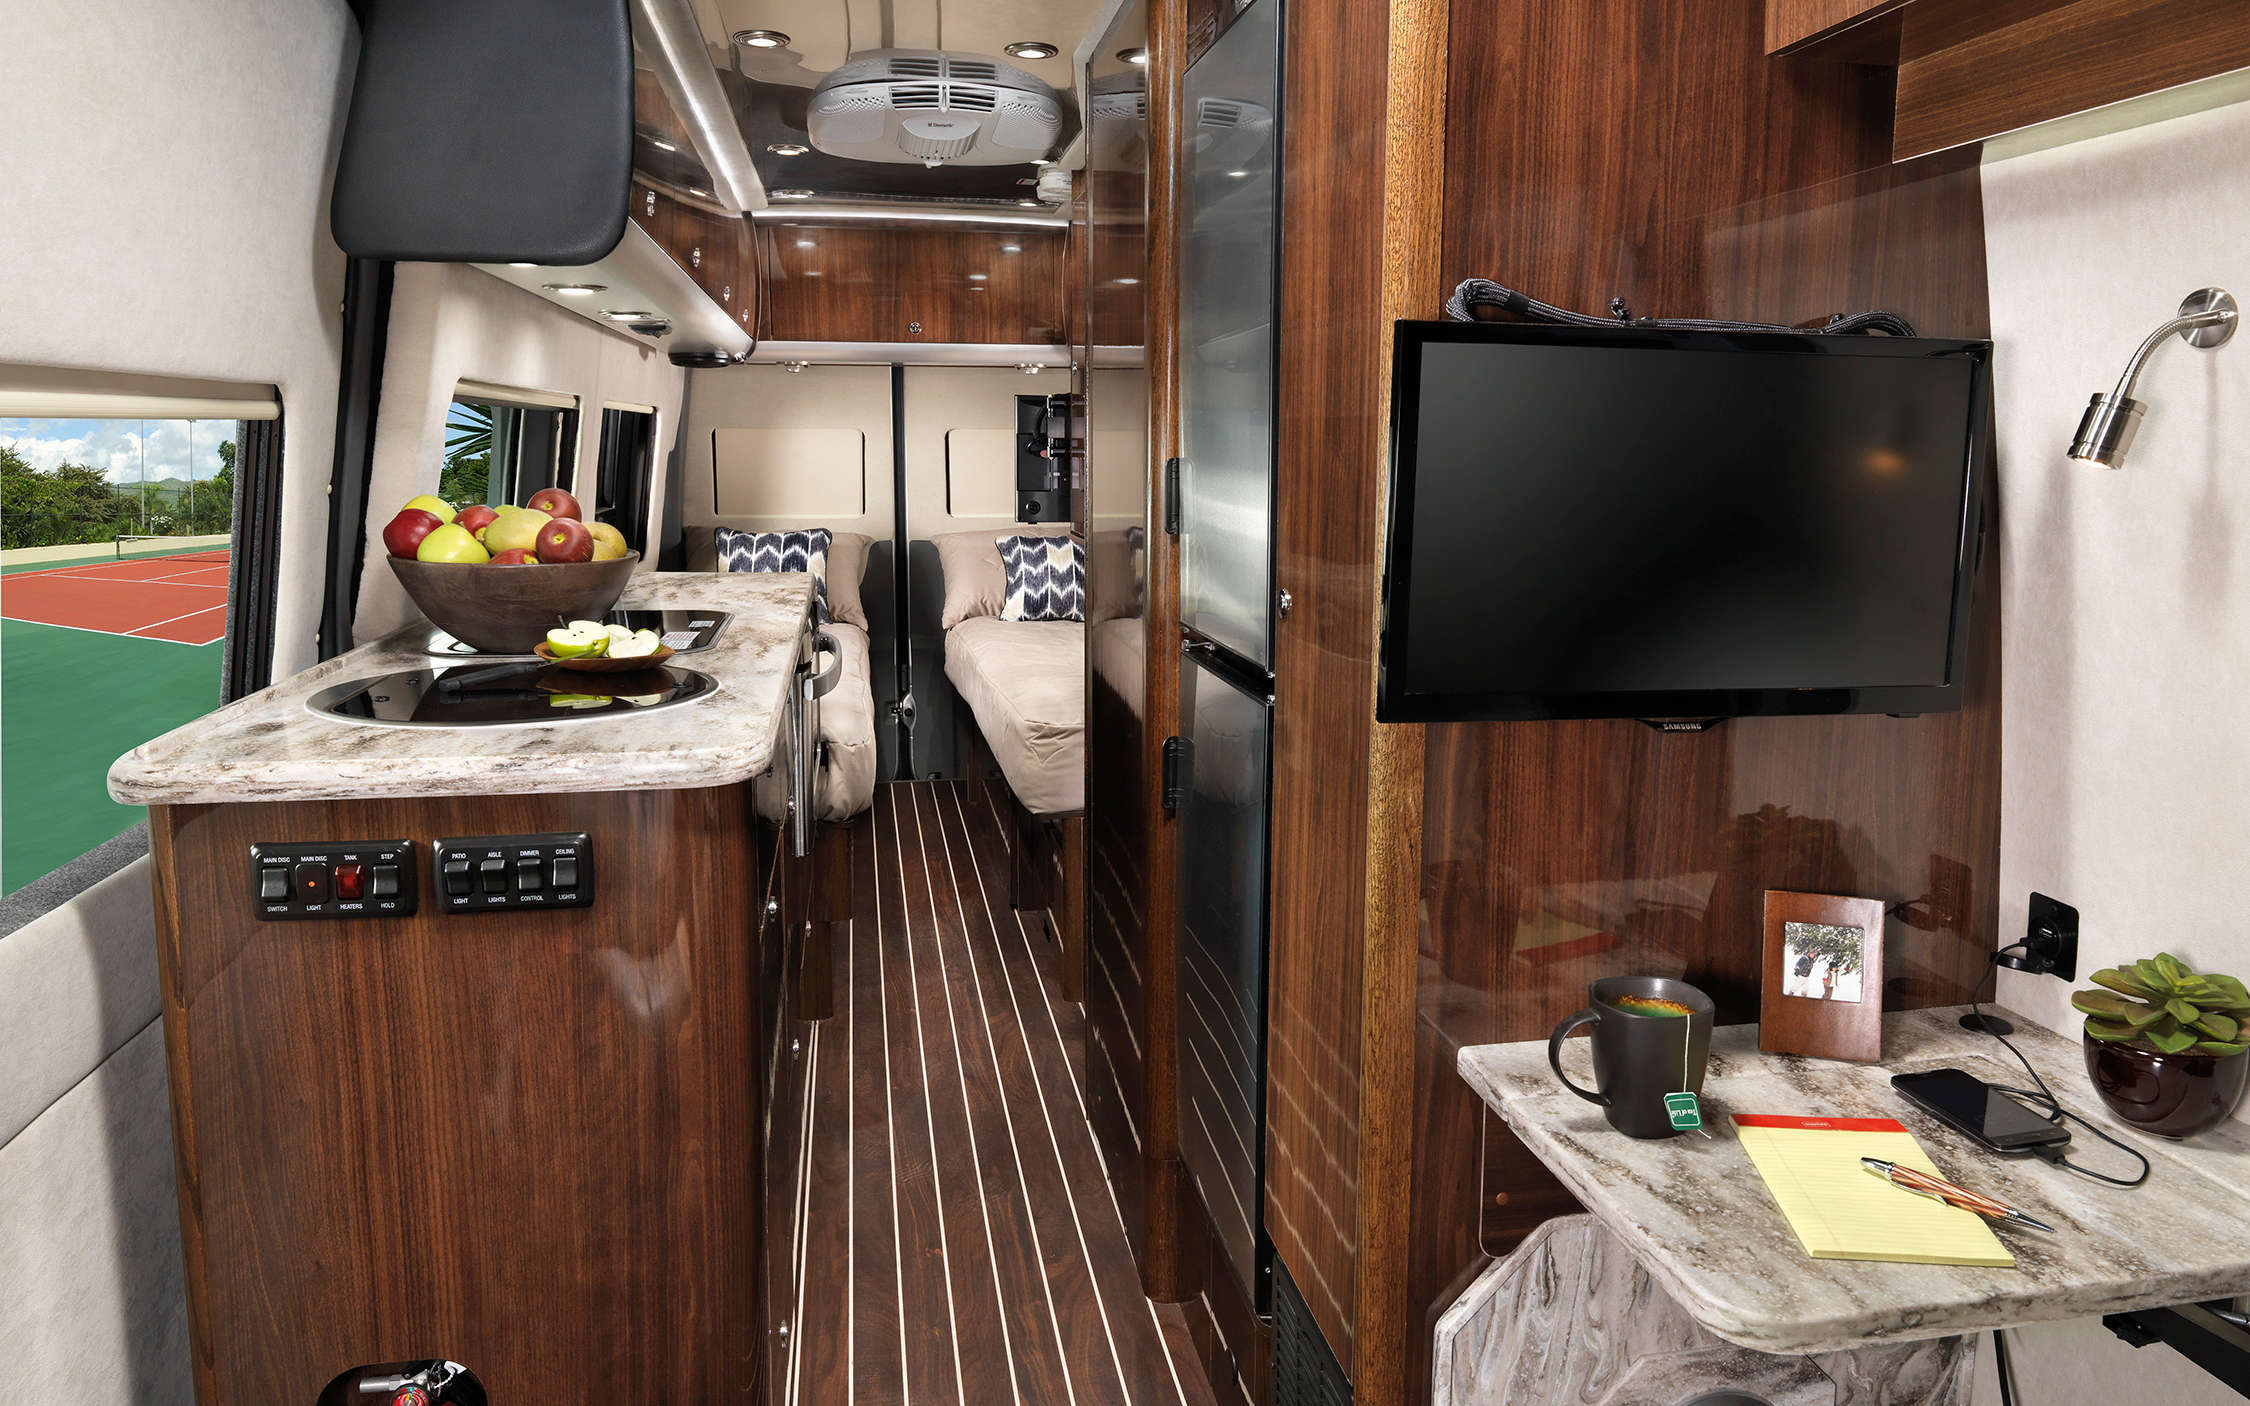 worthy lovely inspirational with stylish decorating remodel interior camper on design simple about ideas